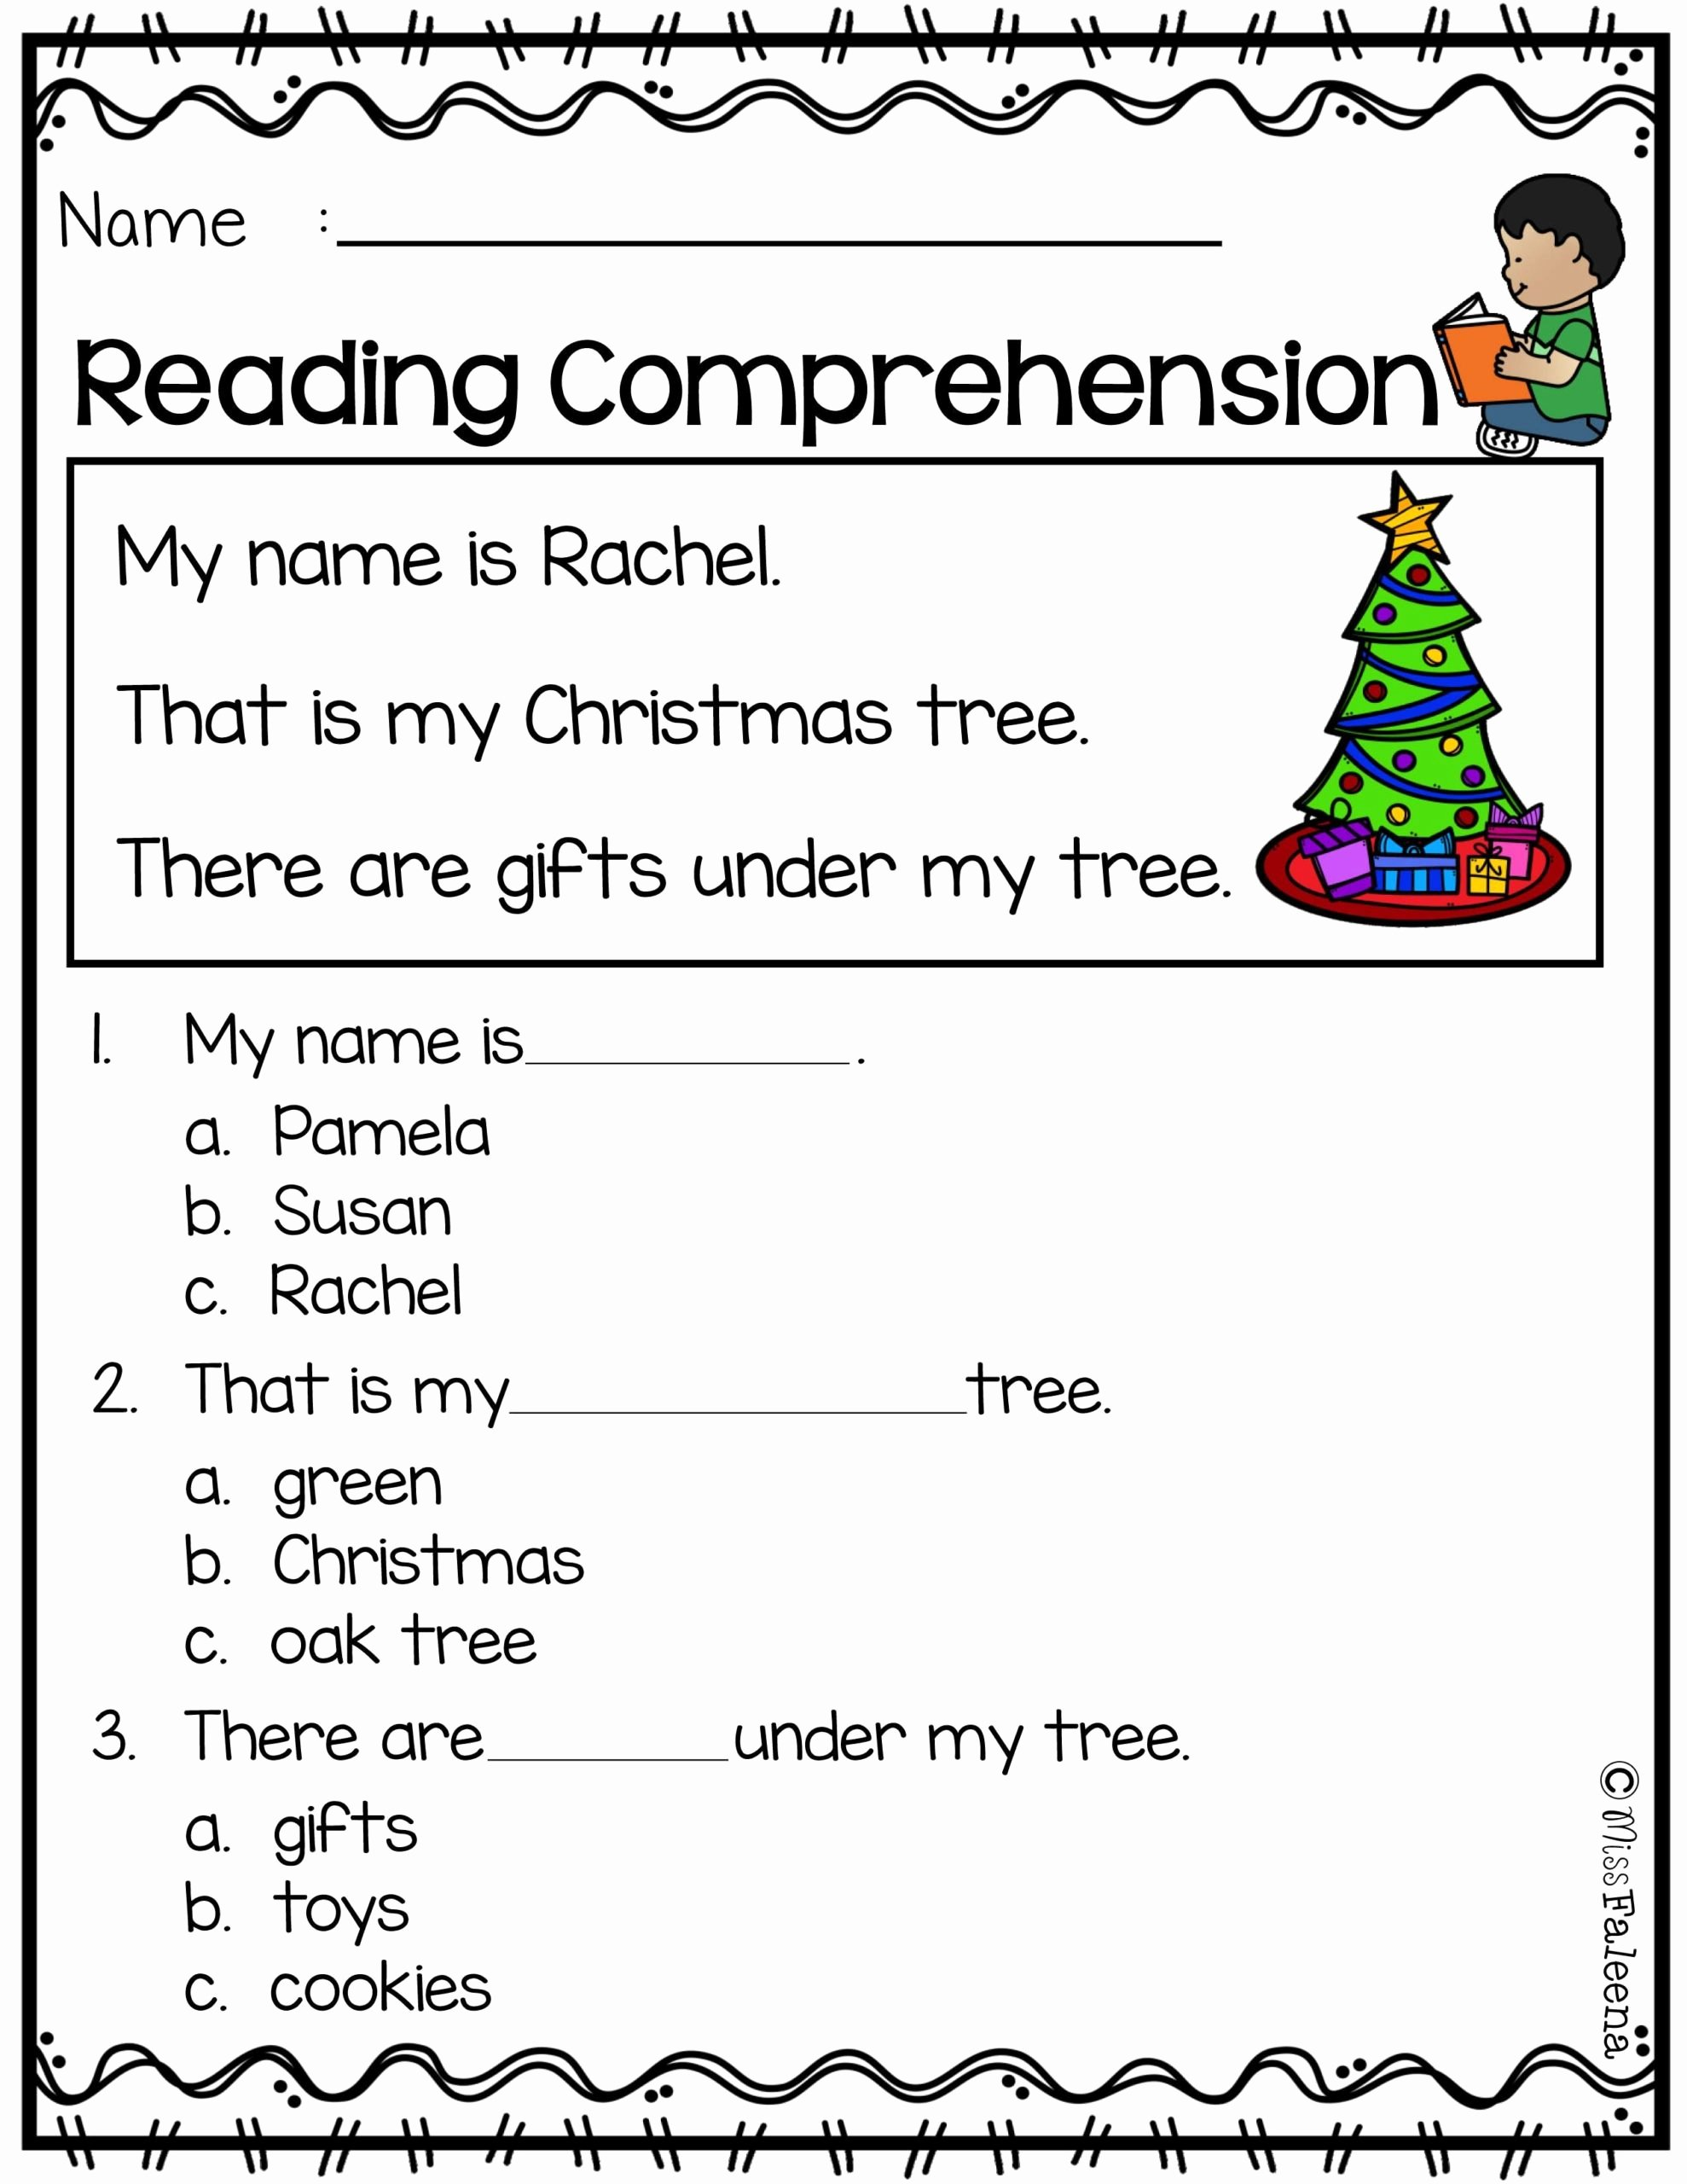 Free Christmas Reading Comprehension Worksheets top Math Worksheet Third Grade Readingsion Worksheets 3rd